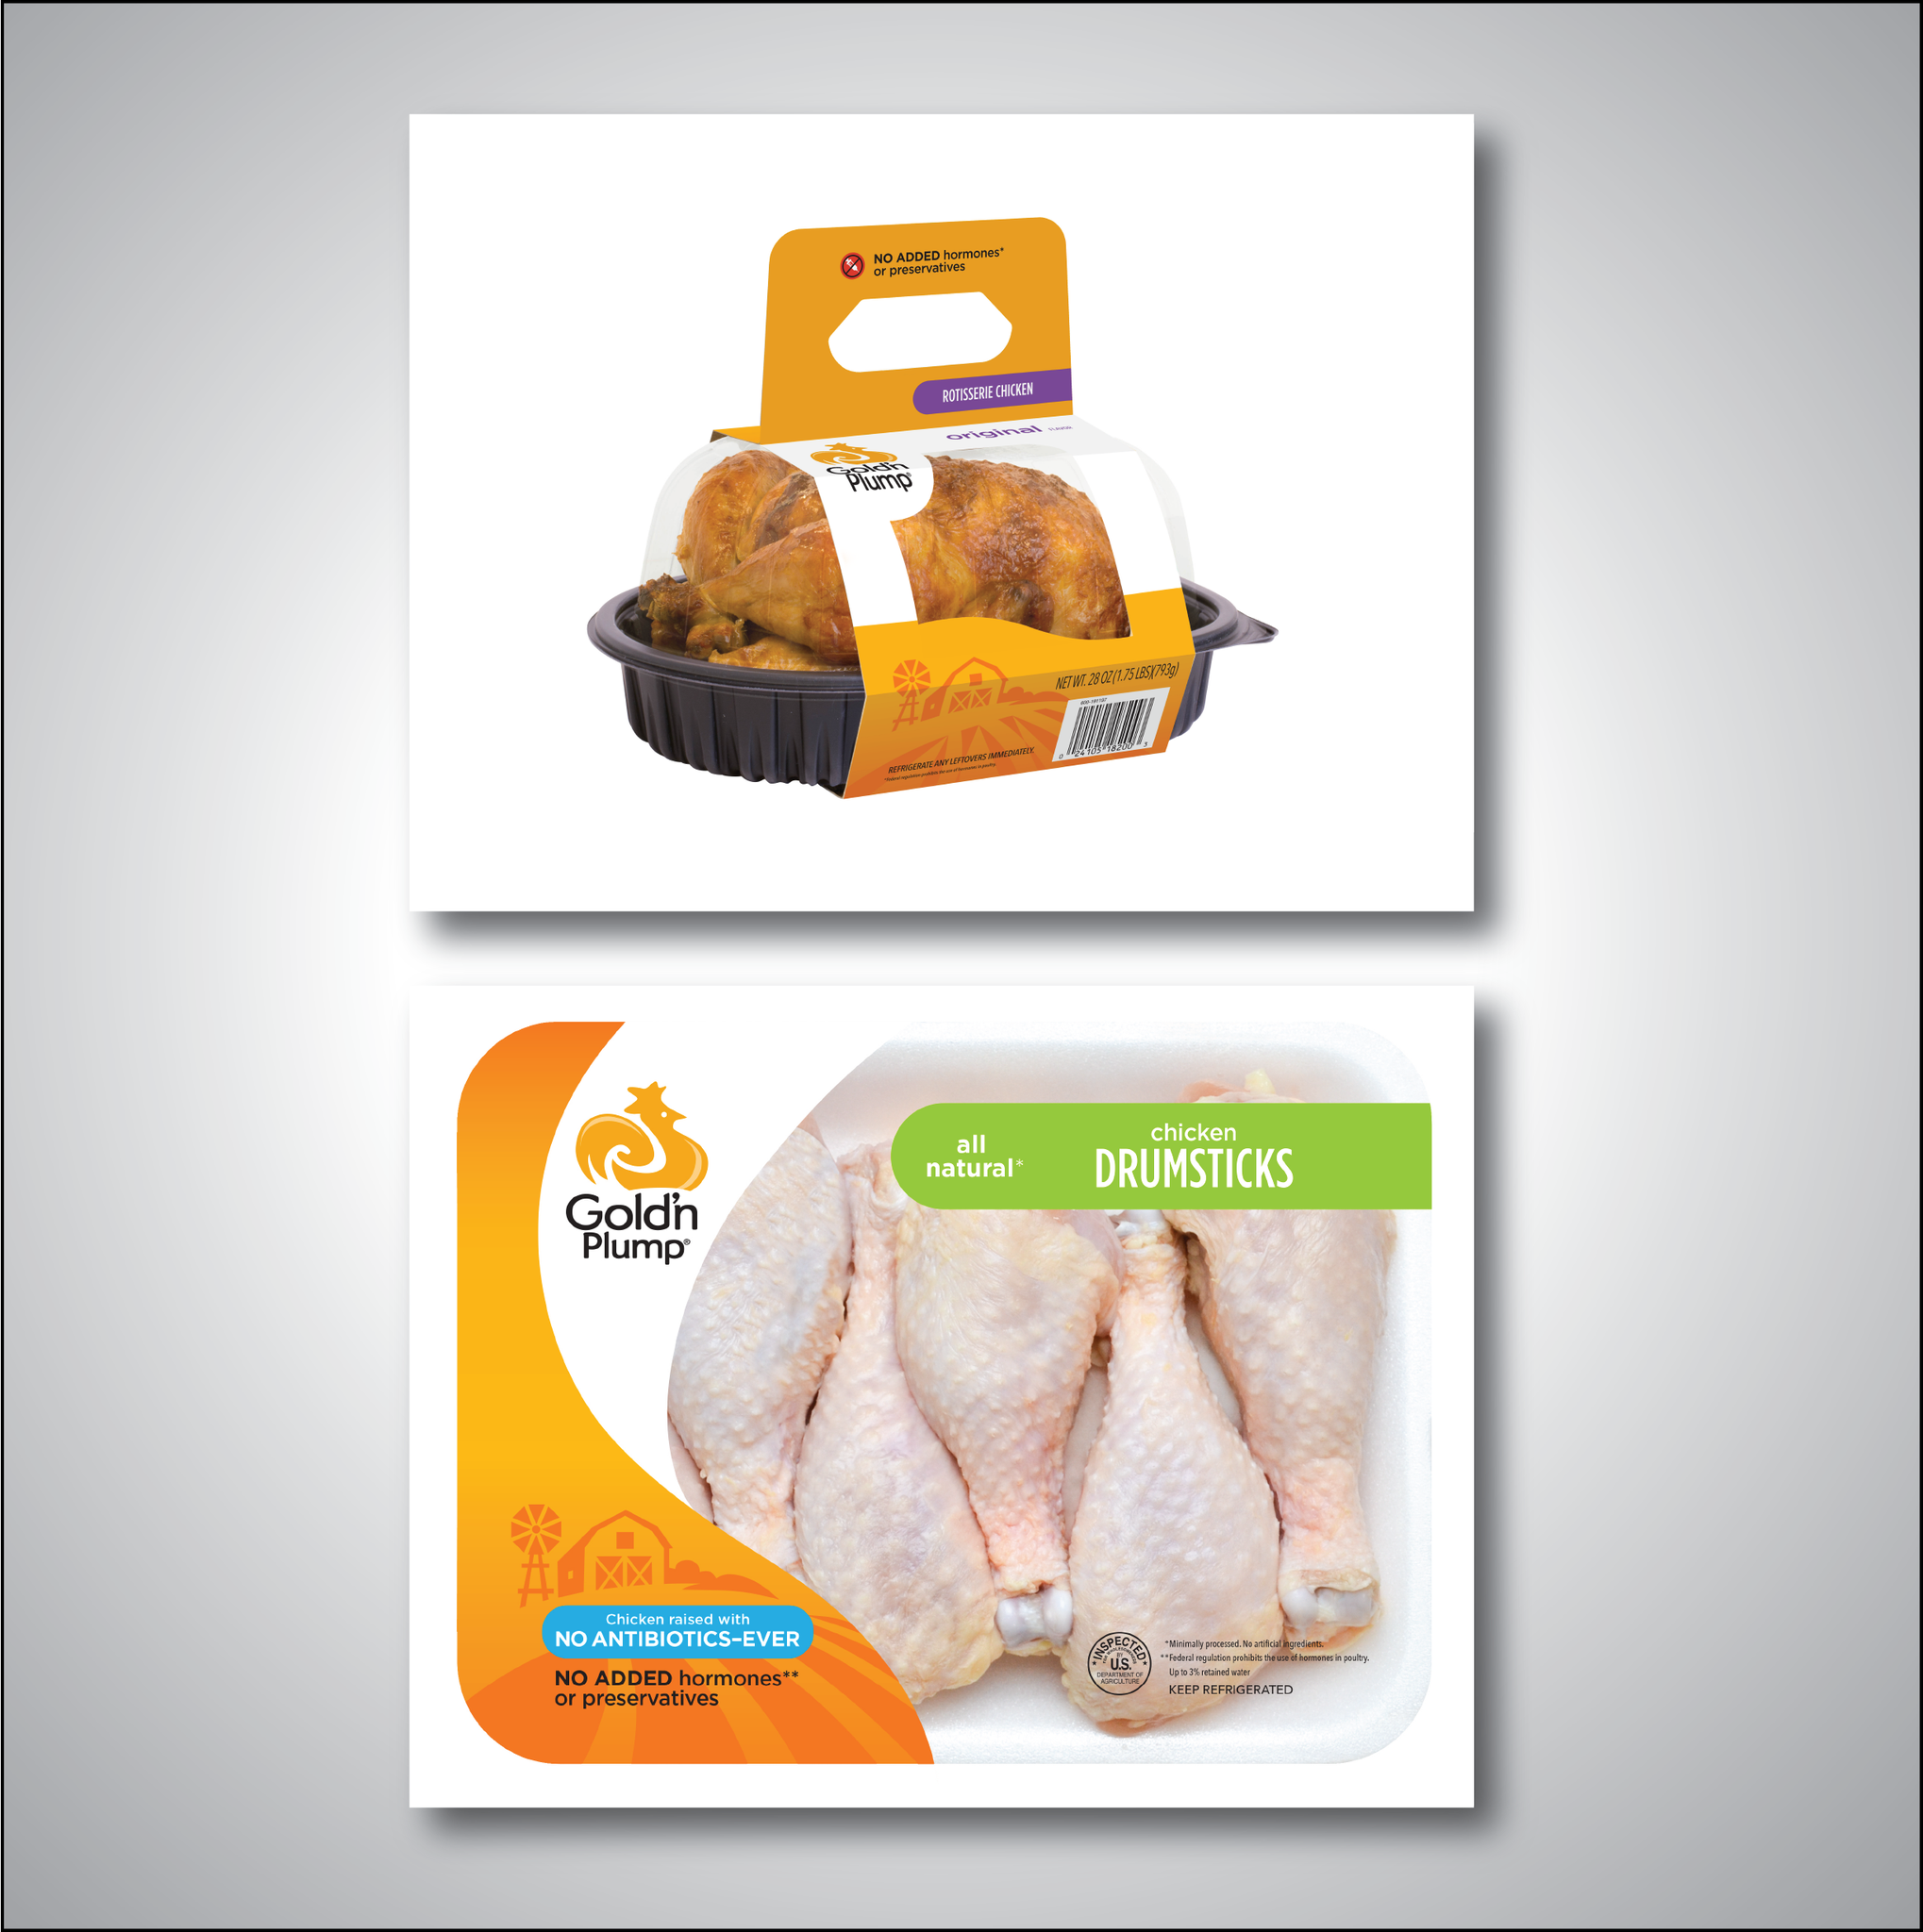 Creative Direction at Pilgrims Chicken. New branded look to Gold'n Plump Chicken packaging.